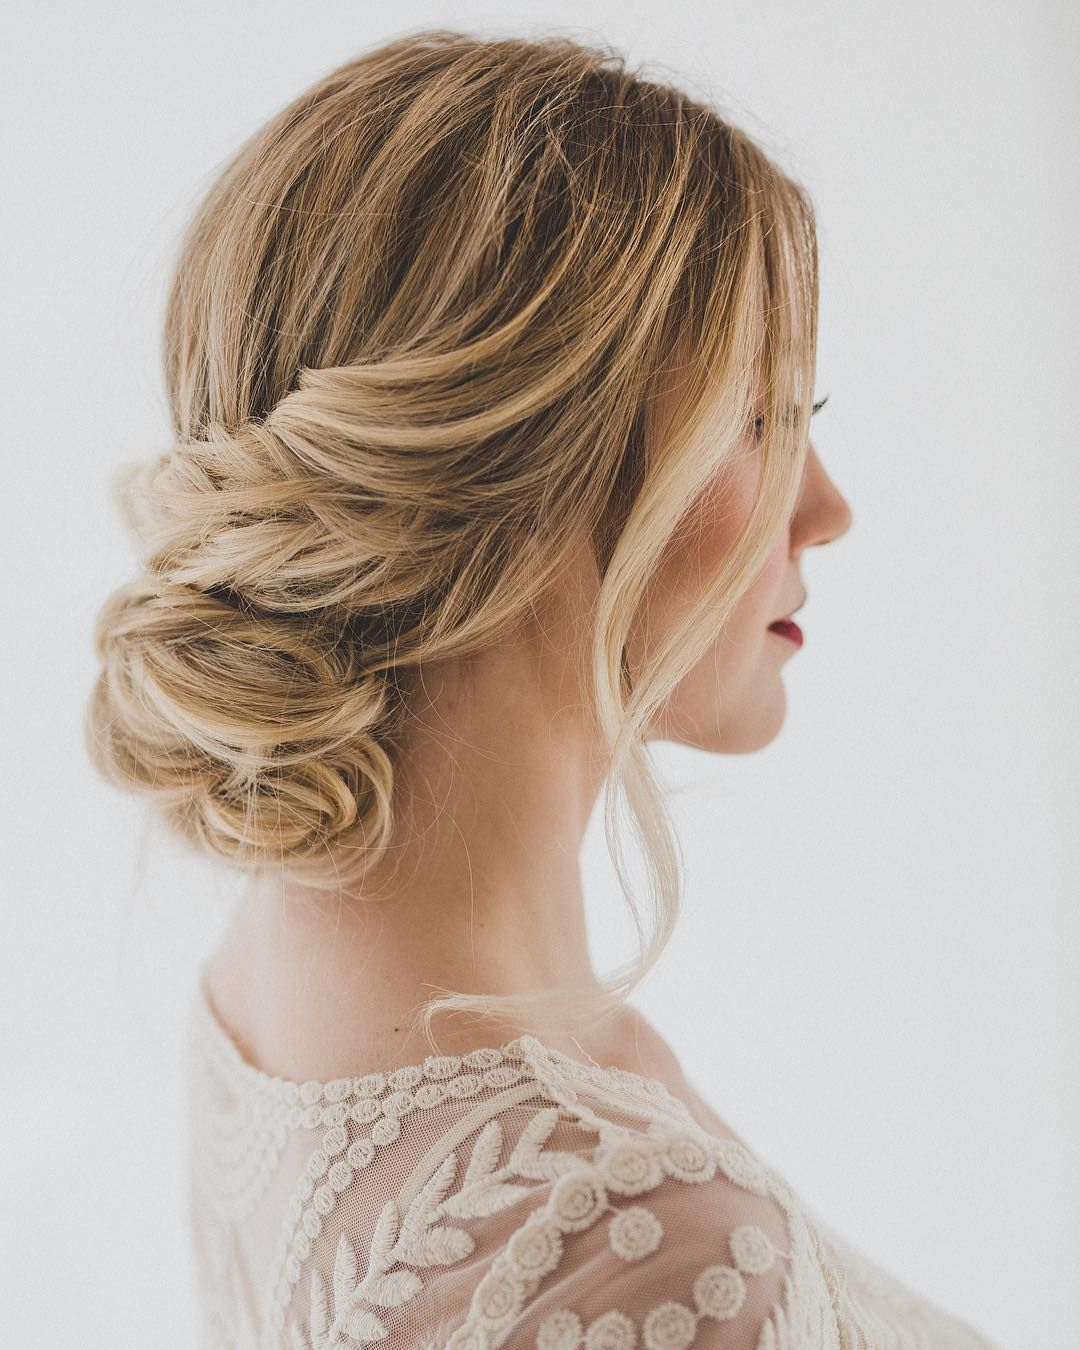 Pretty Wedding Updo For Any Bride Looking For A Unique Style